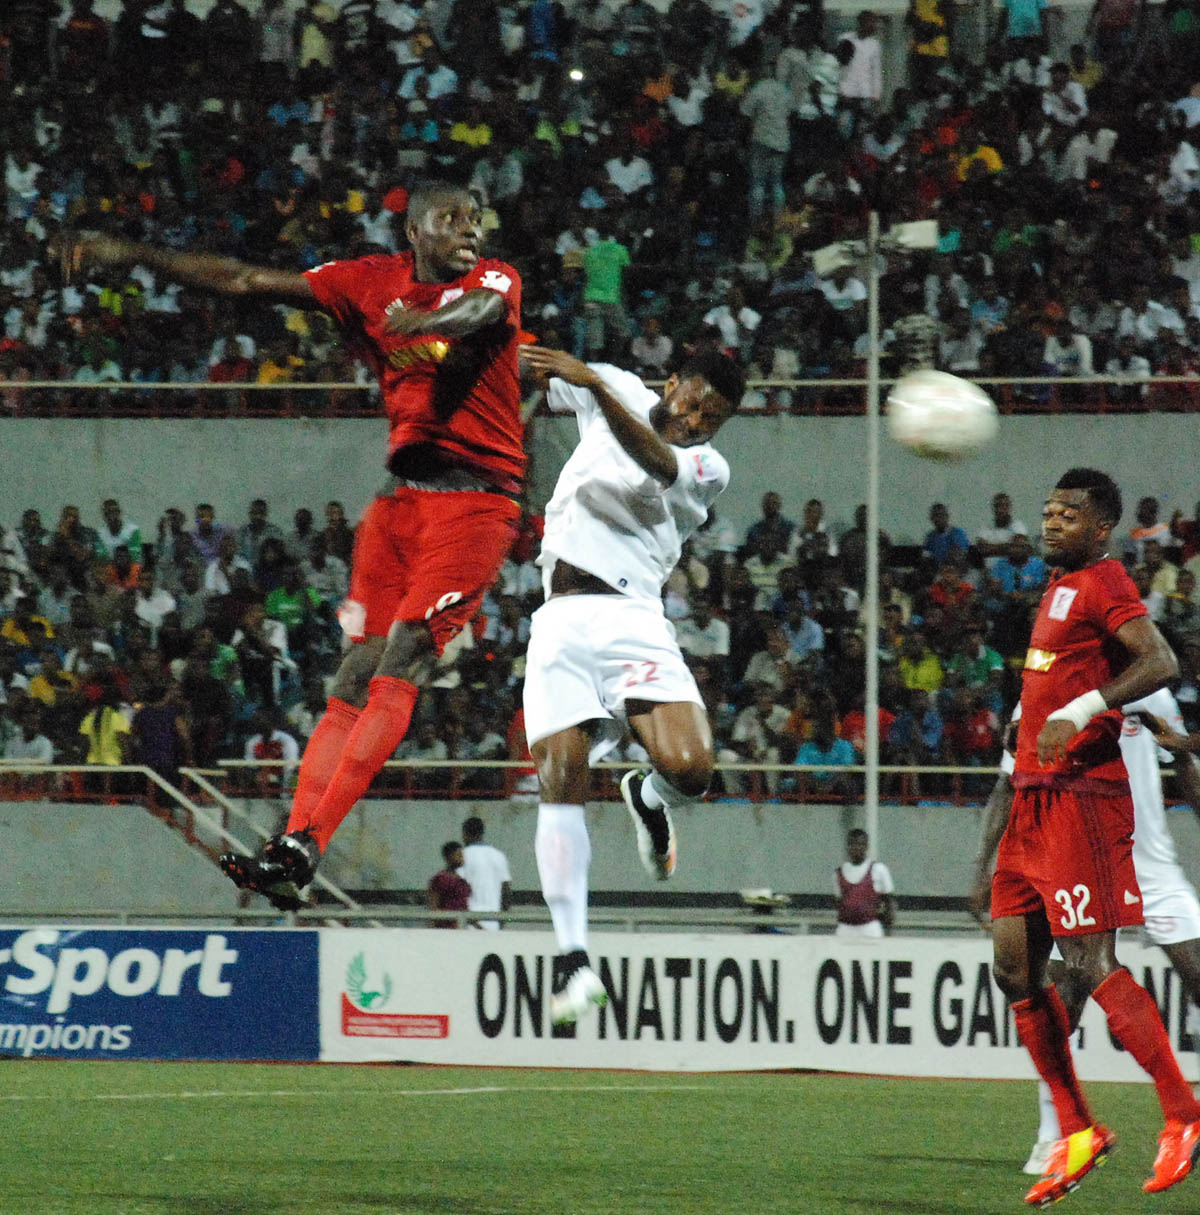 NPFL: Rangers Edge Abia Warriors, Go Top